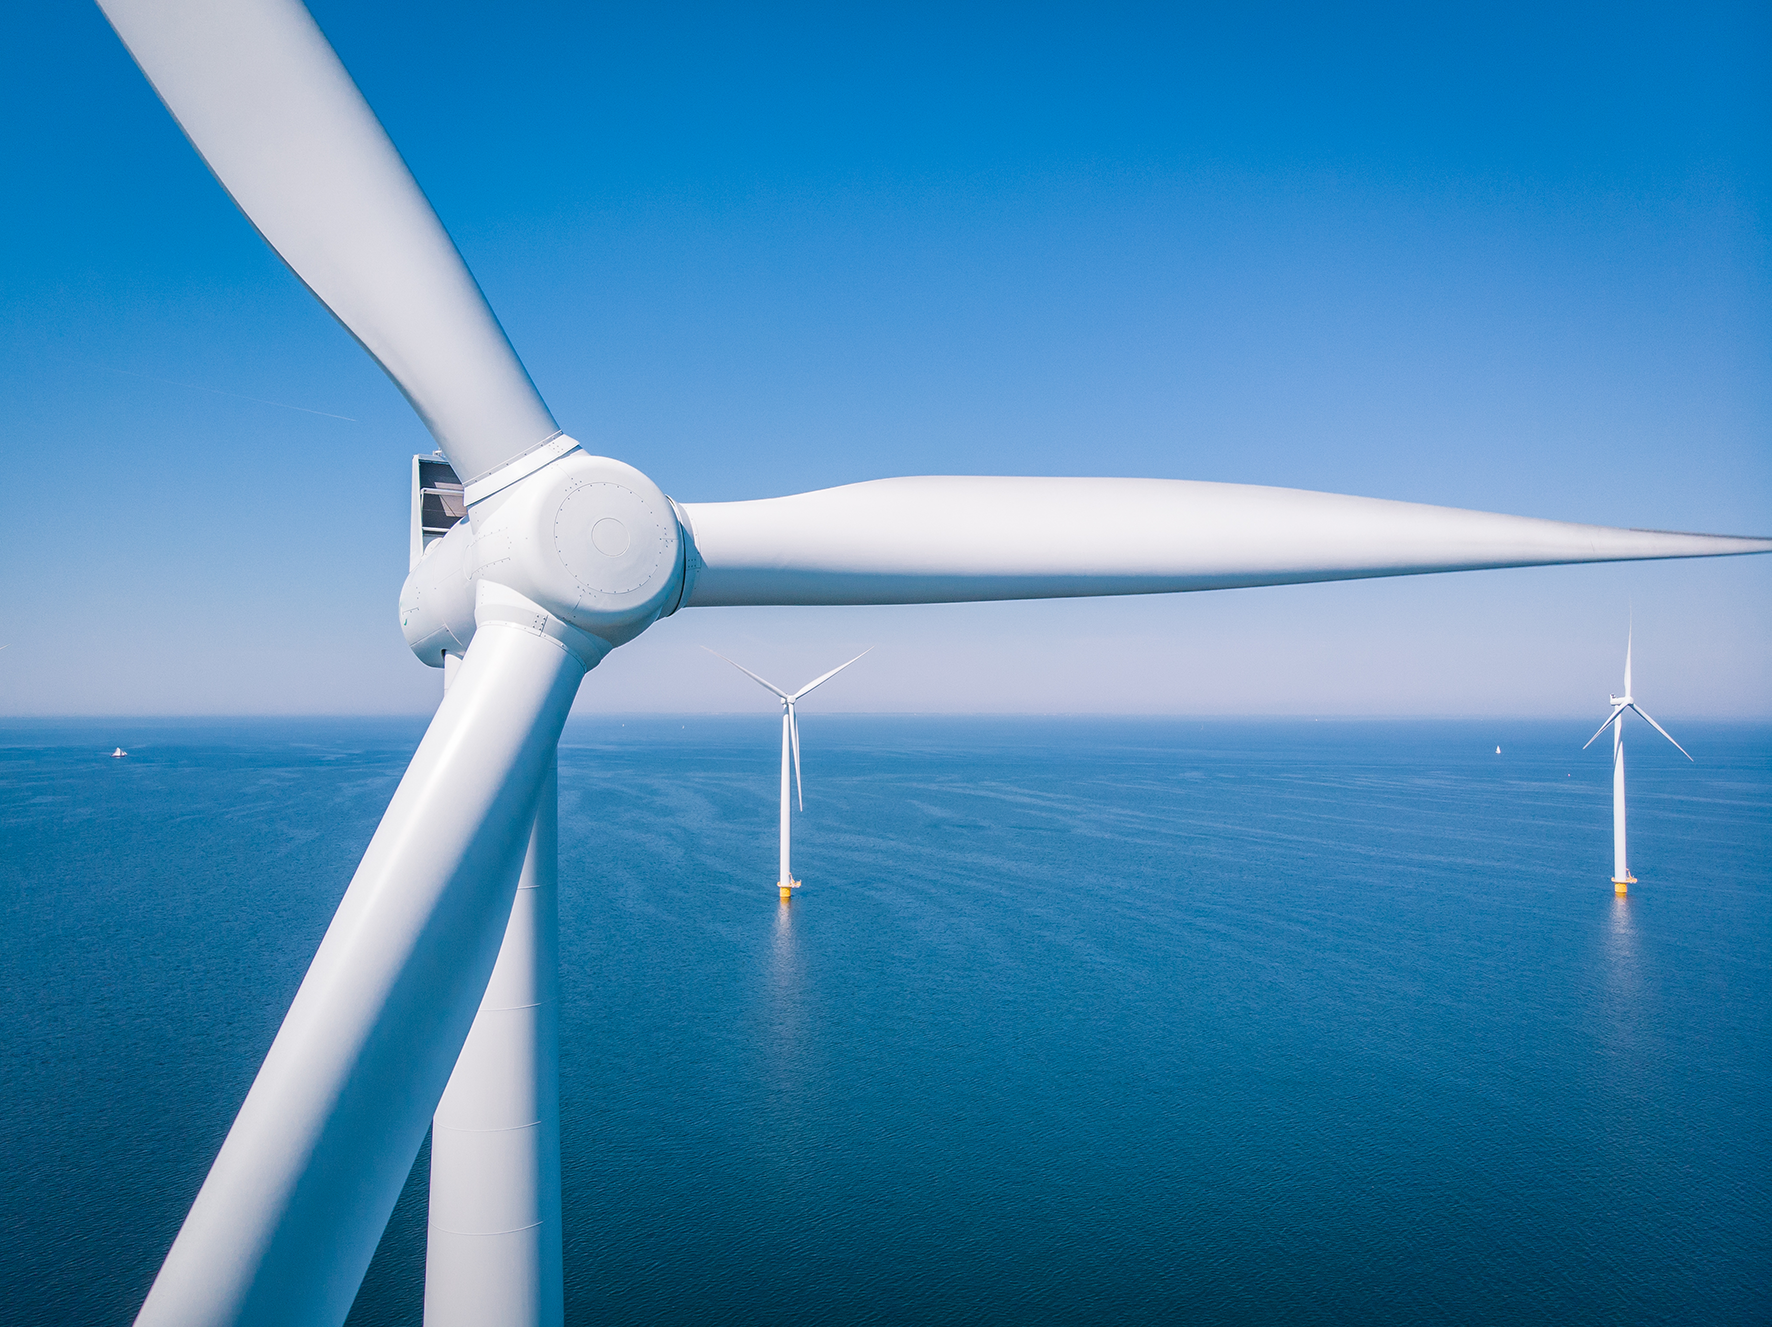 Turbines at an offshore wind farm.